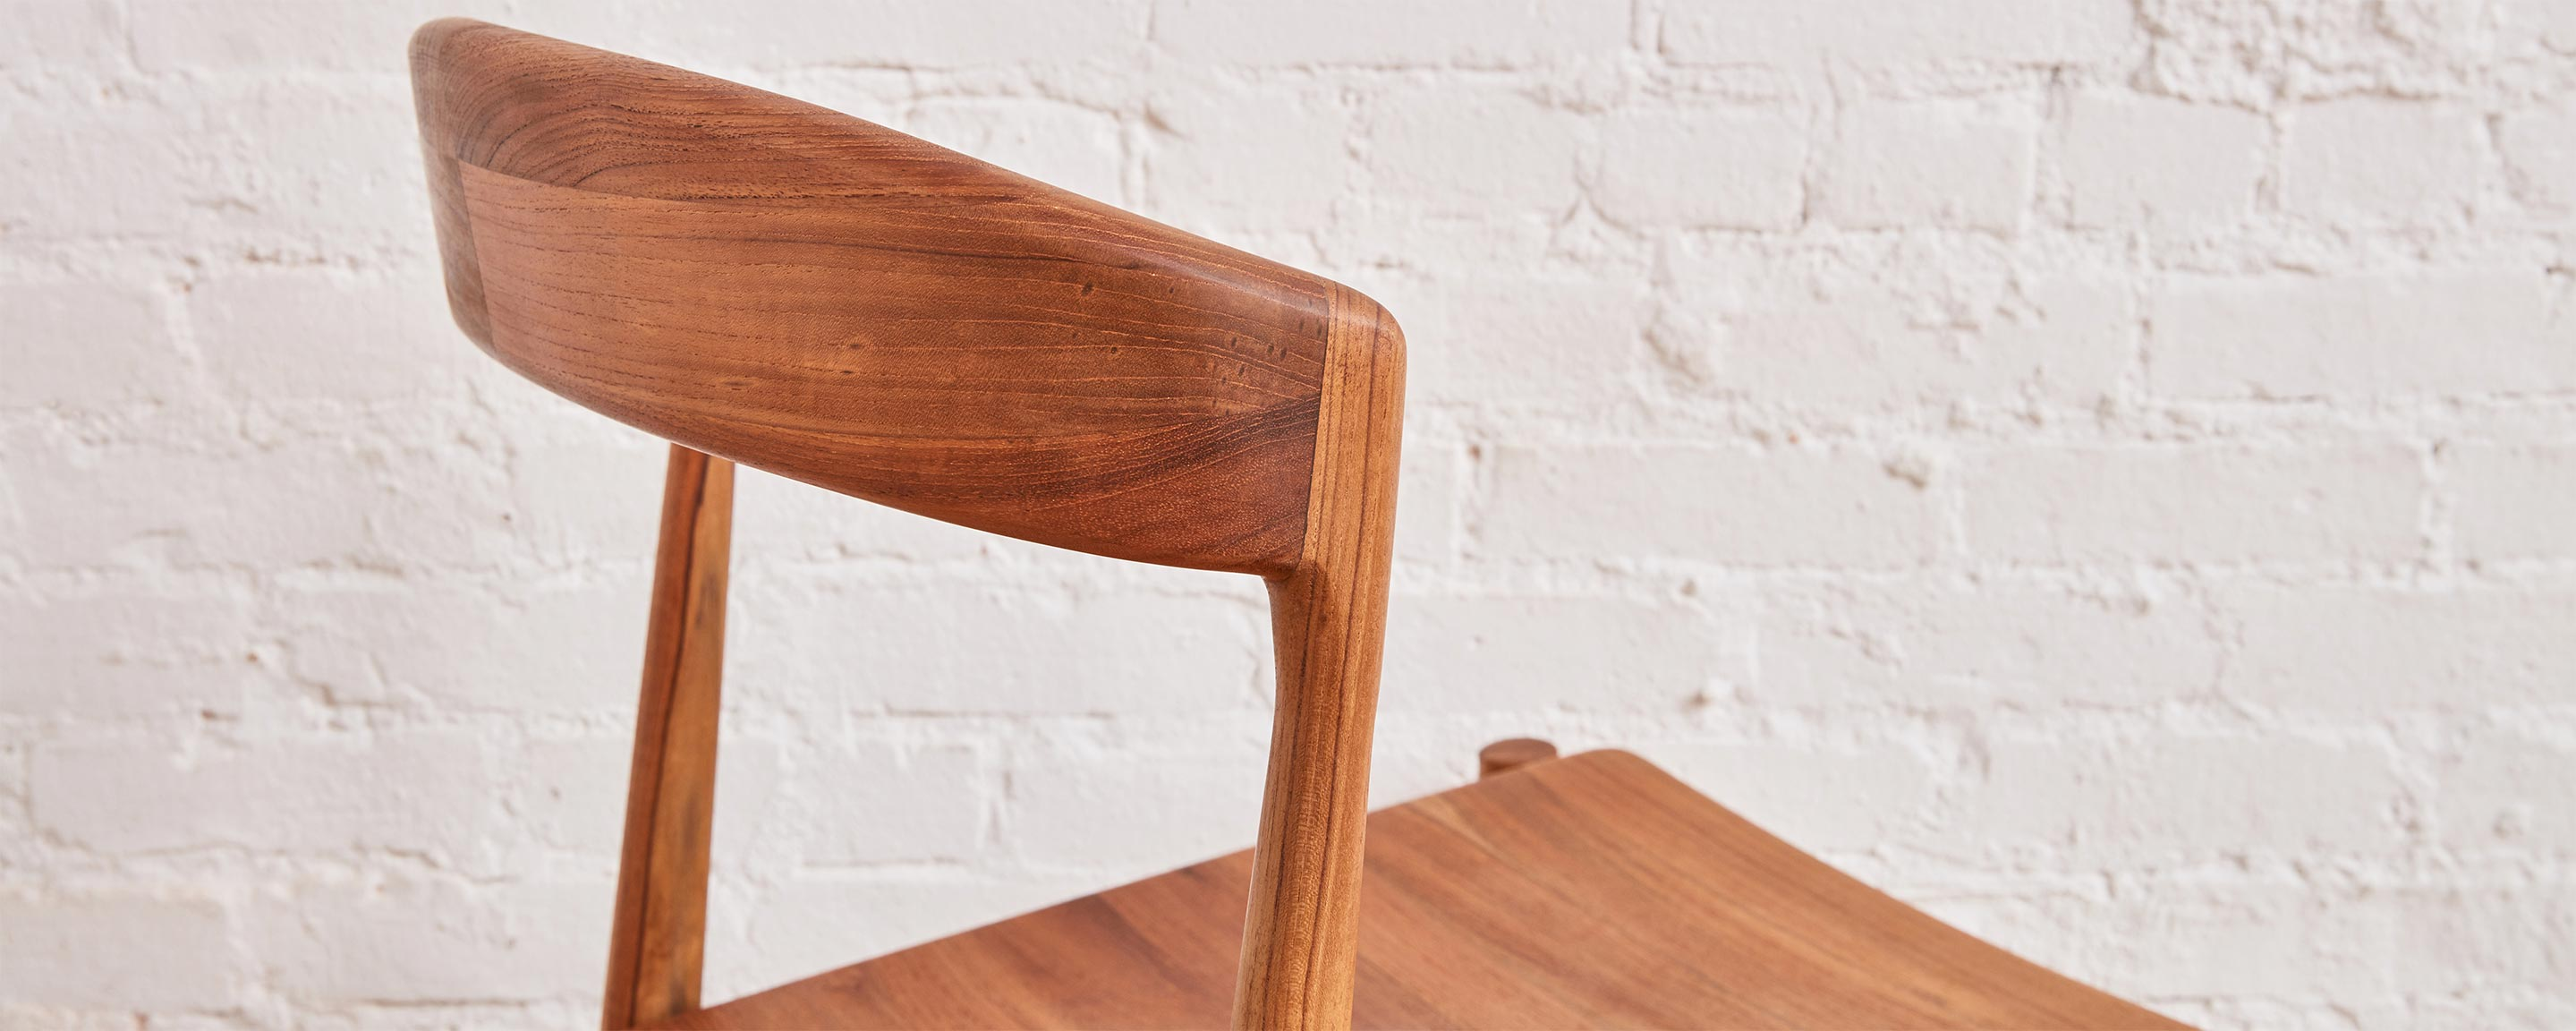 the teak dining chair